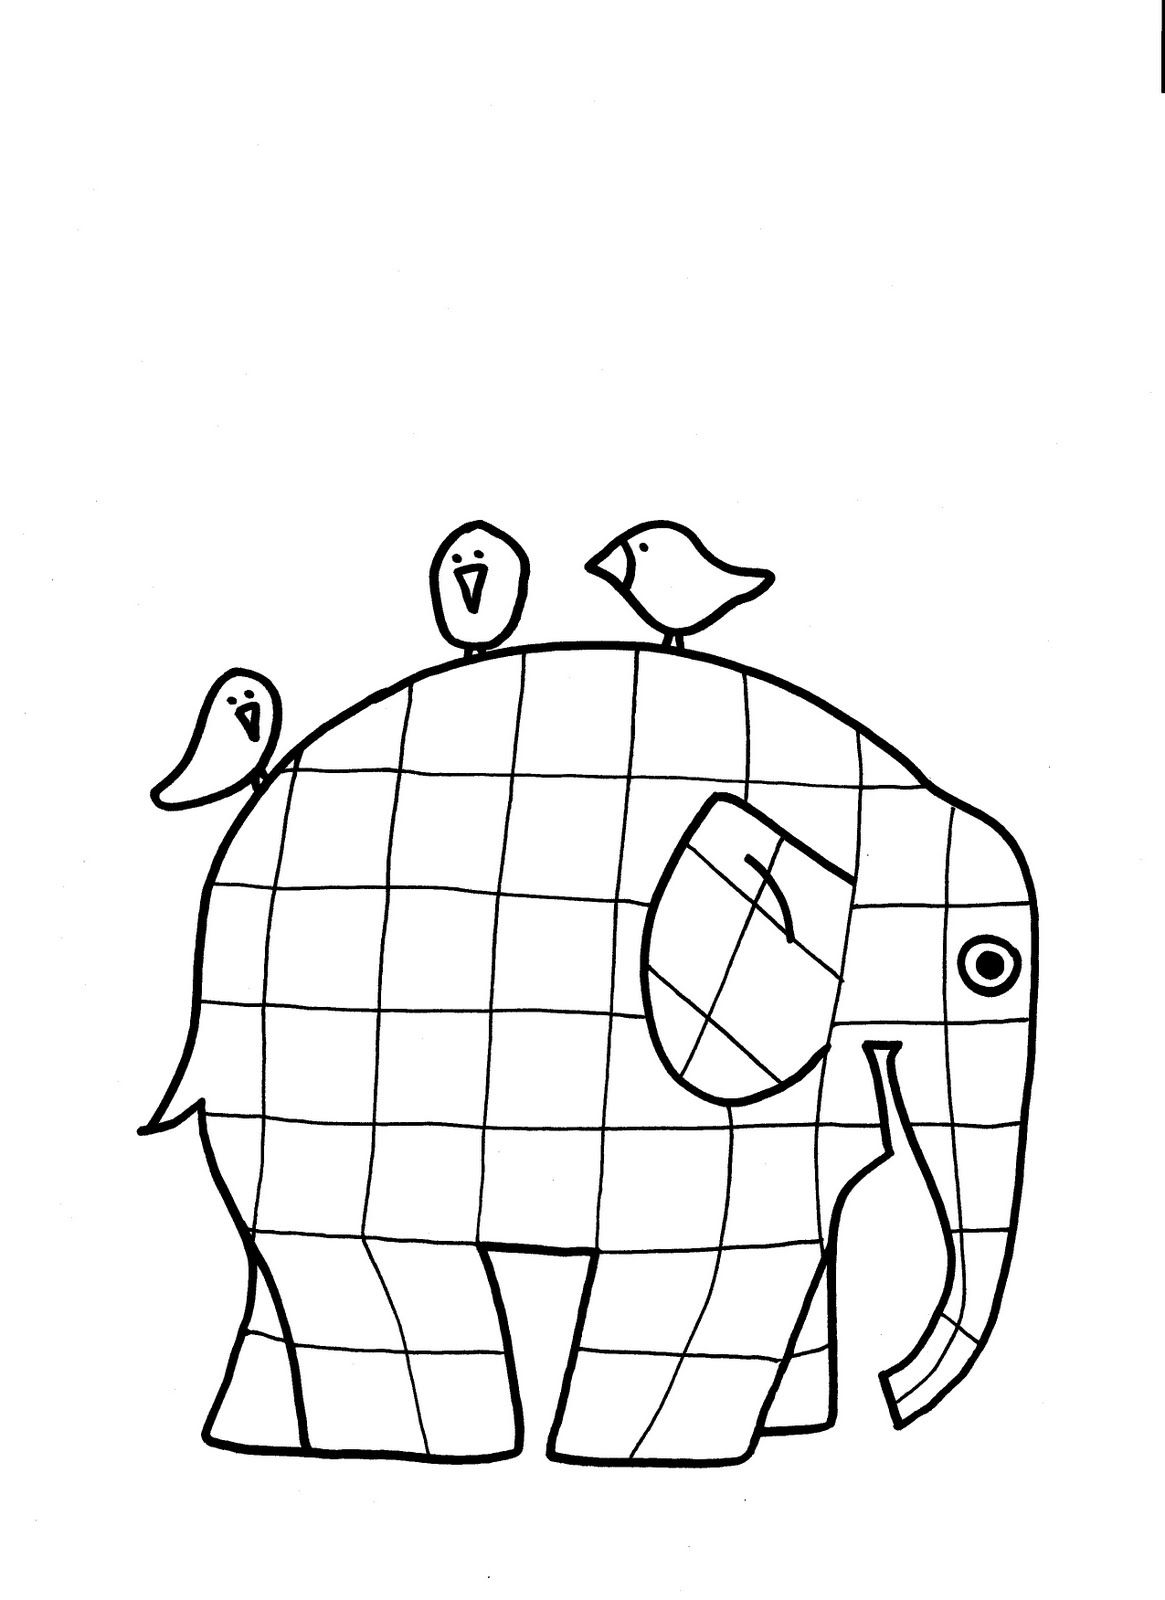 Have Kids Finger Paint Add Goggly Eye And Cut Out Lines Across Elmer The Patchwork Elephant